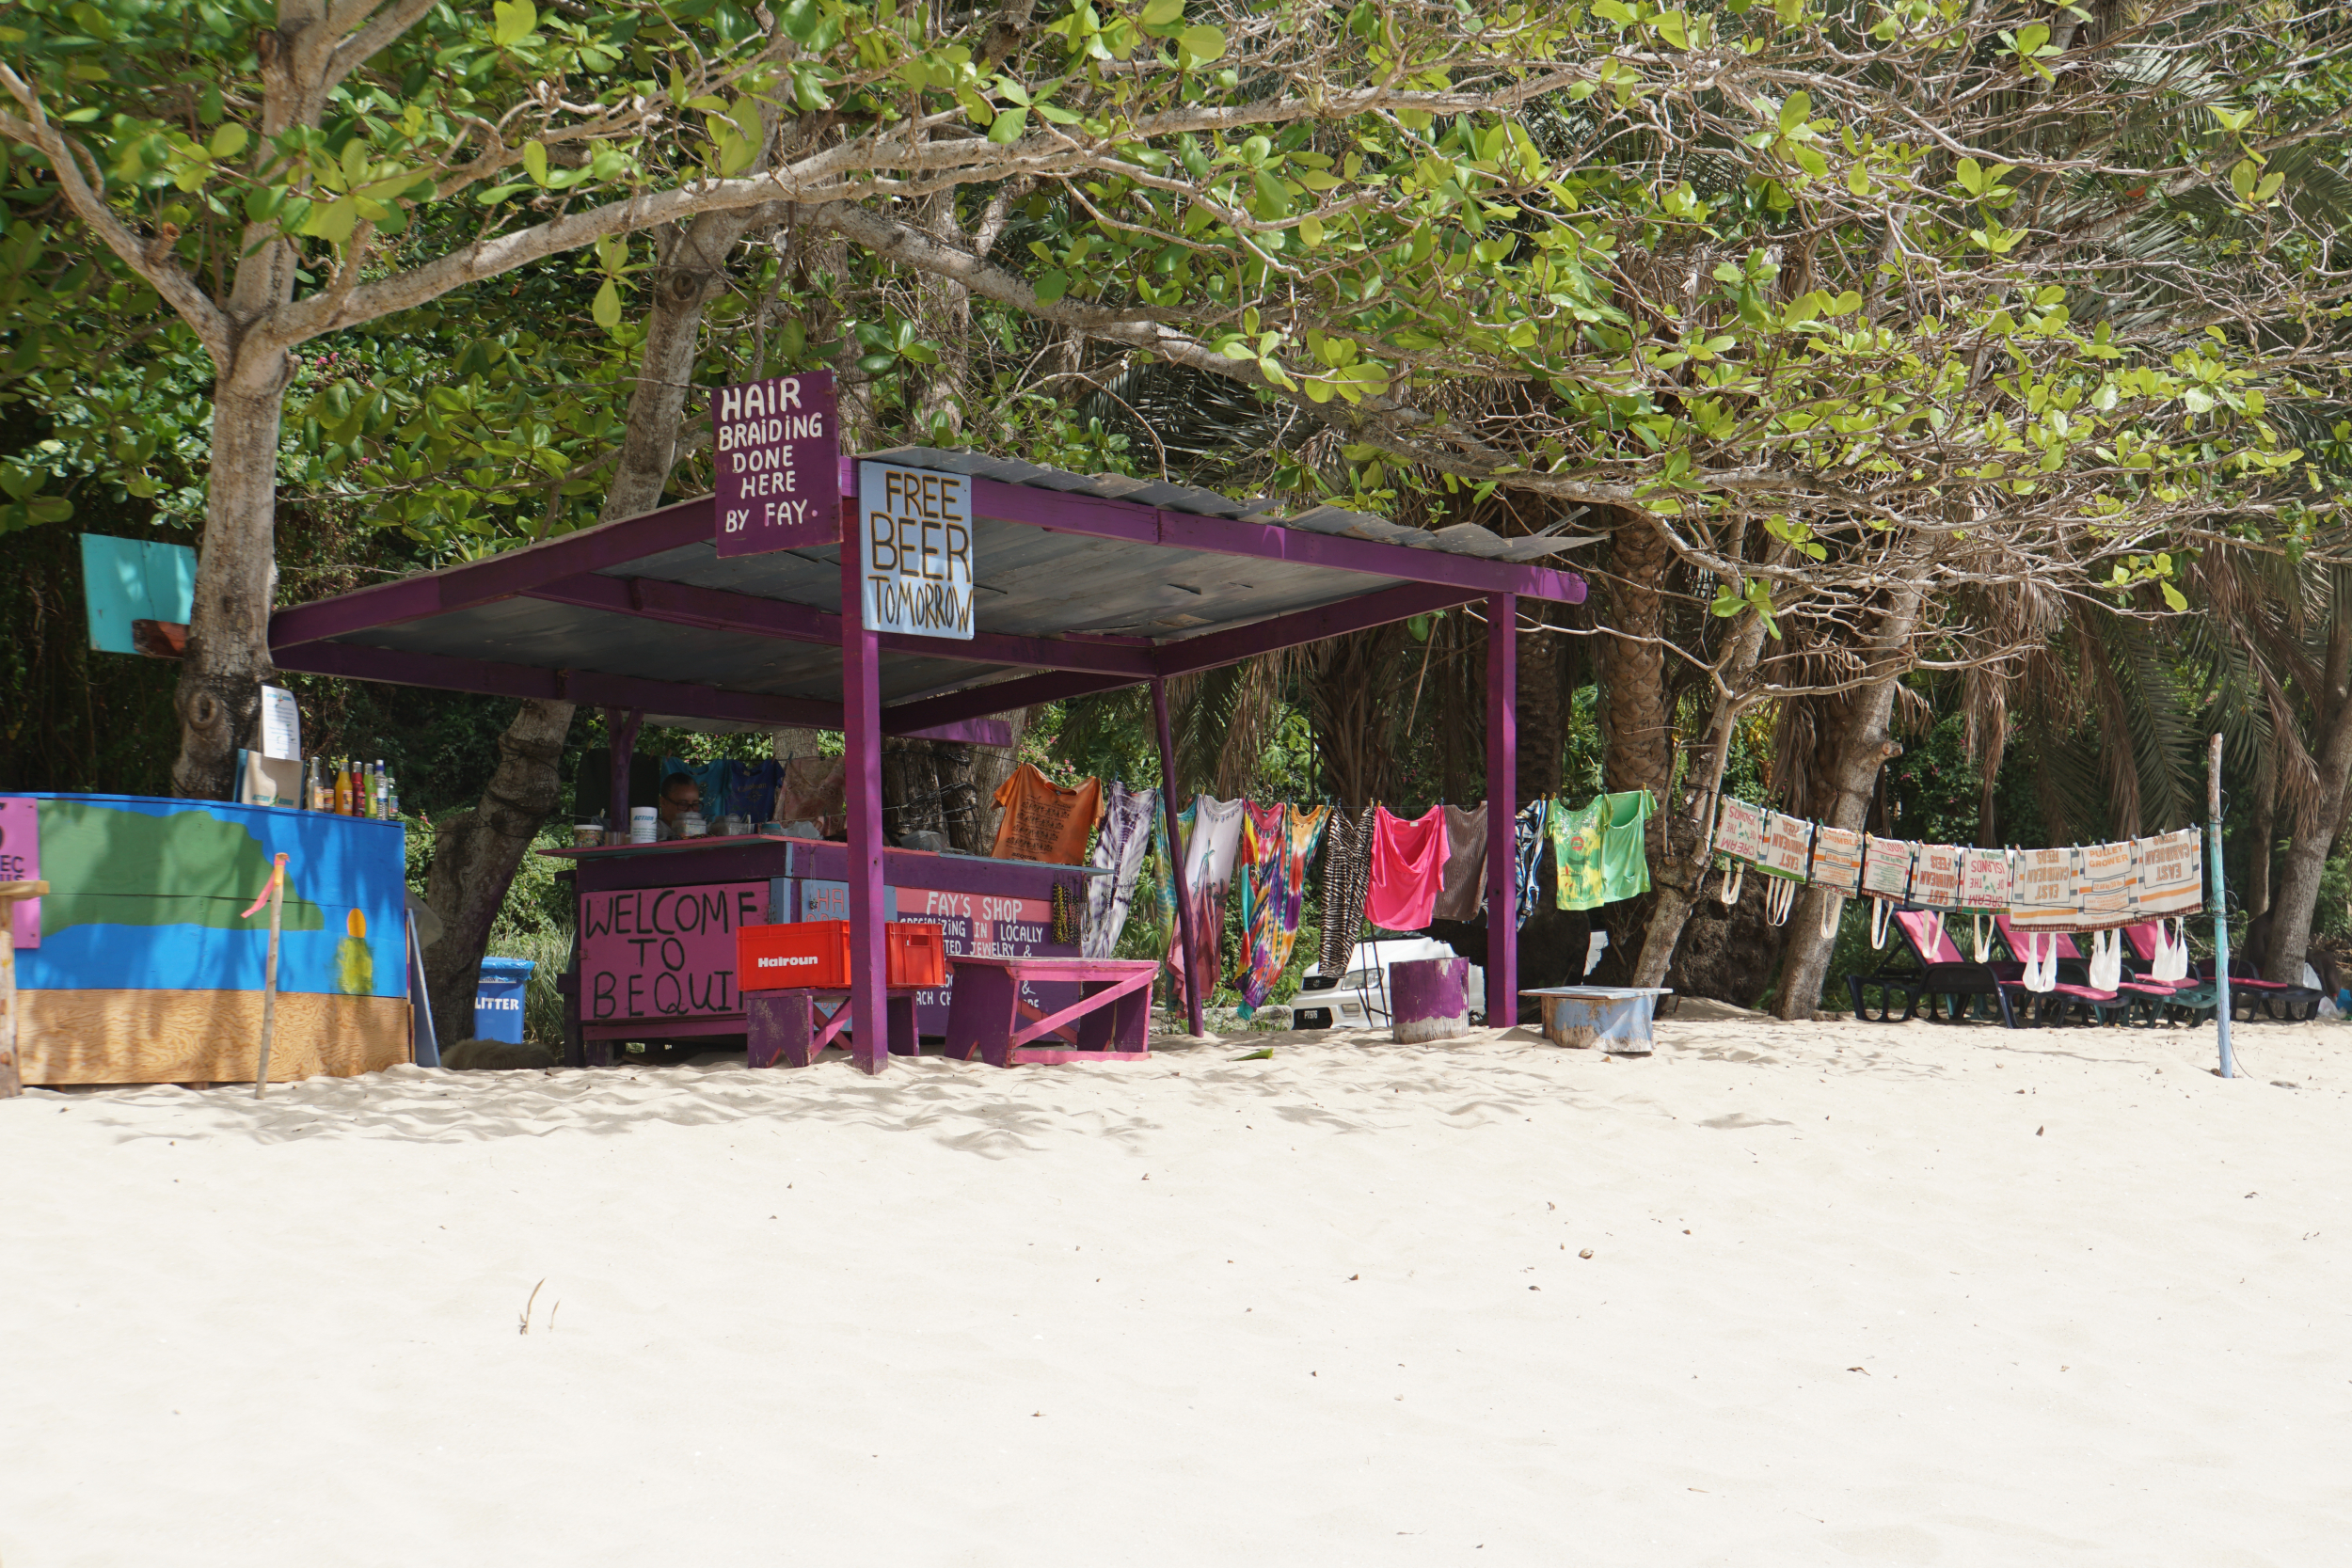 7. Beach on Bequia, no free beer today